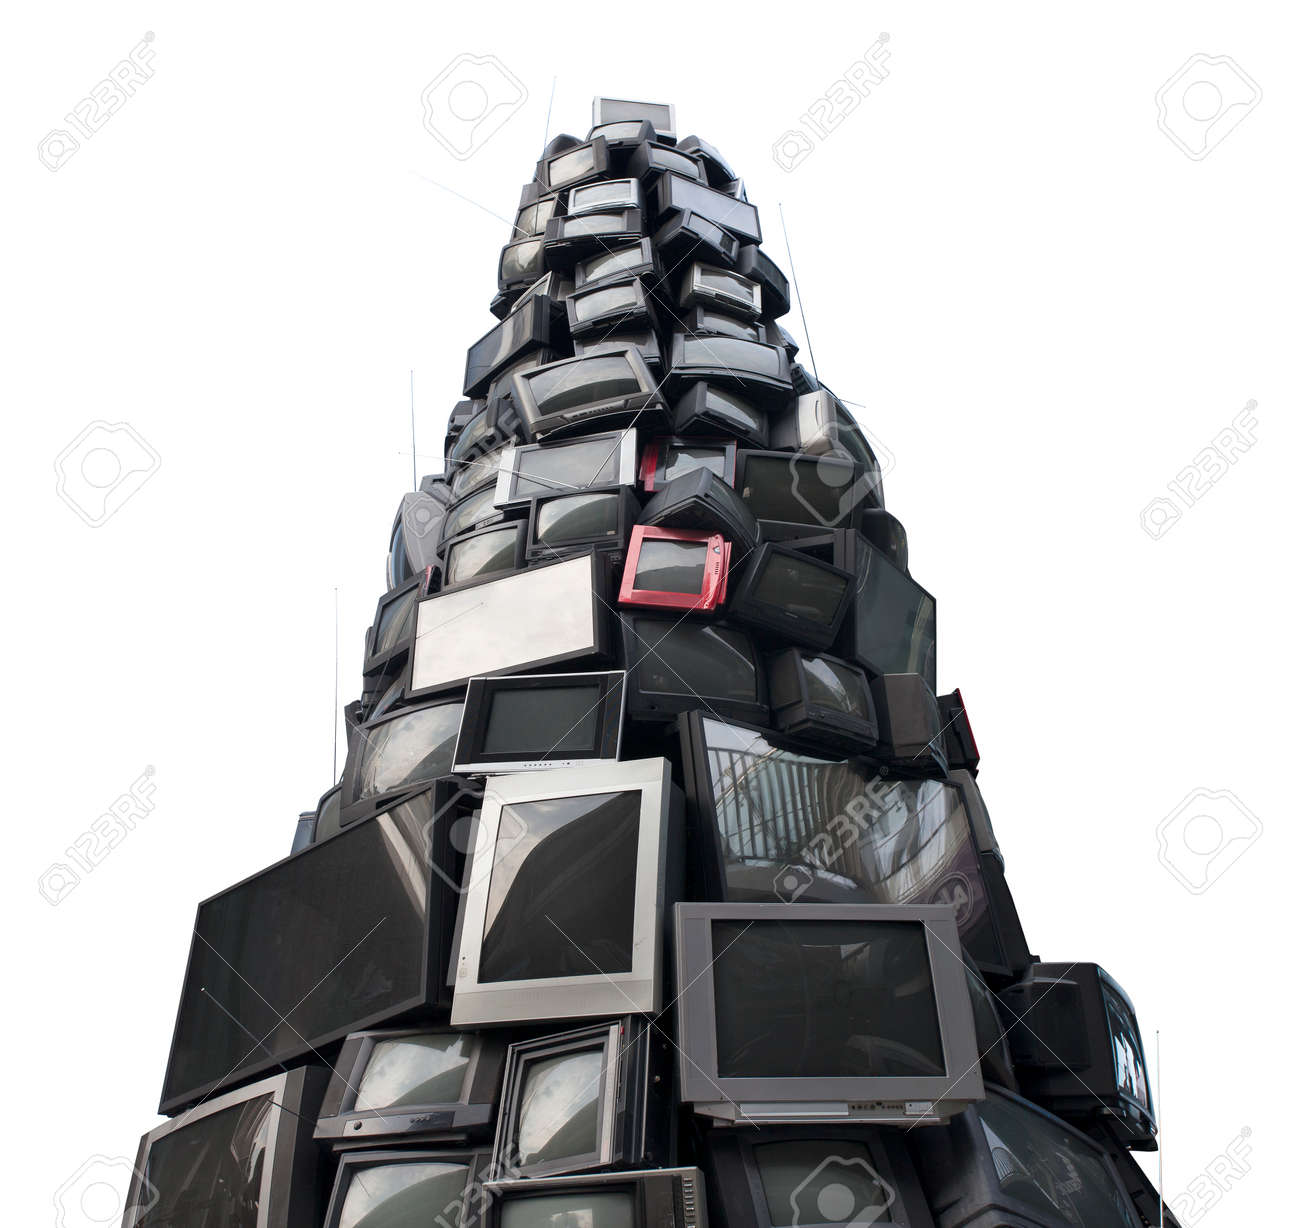 E waste background images - E Waste Old Tv Garbage Rubbish Electronic Junk Recycling Electronics Pile